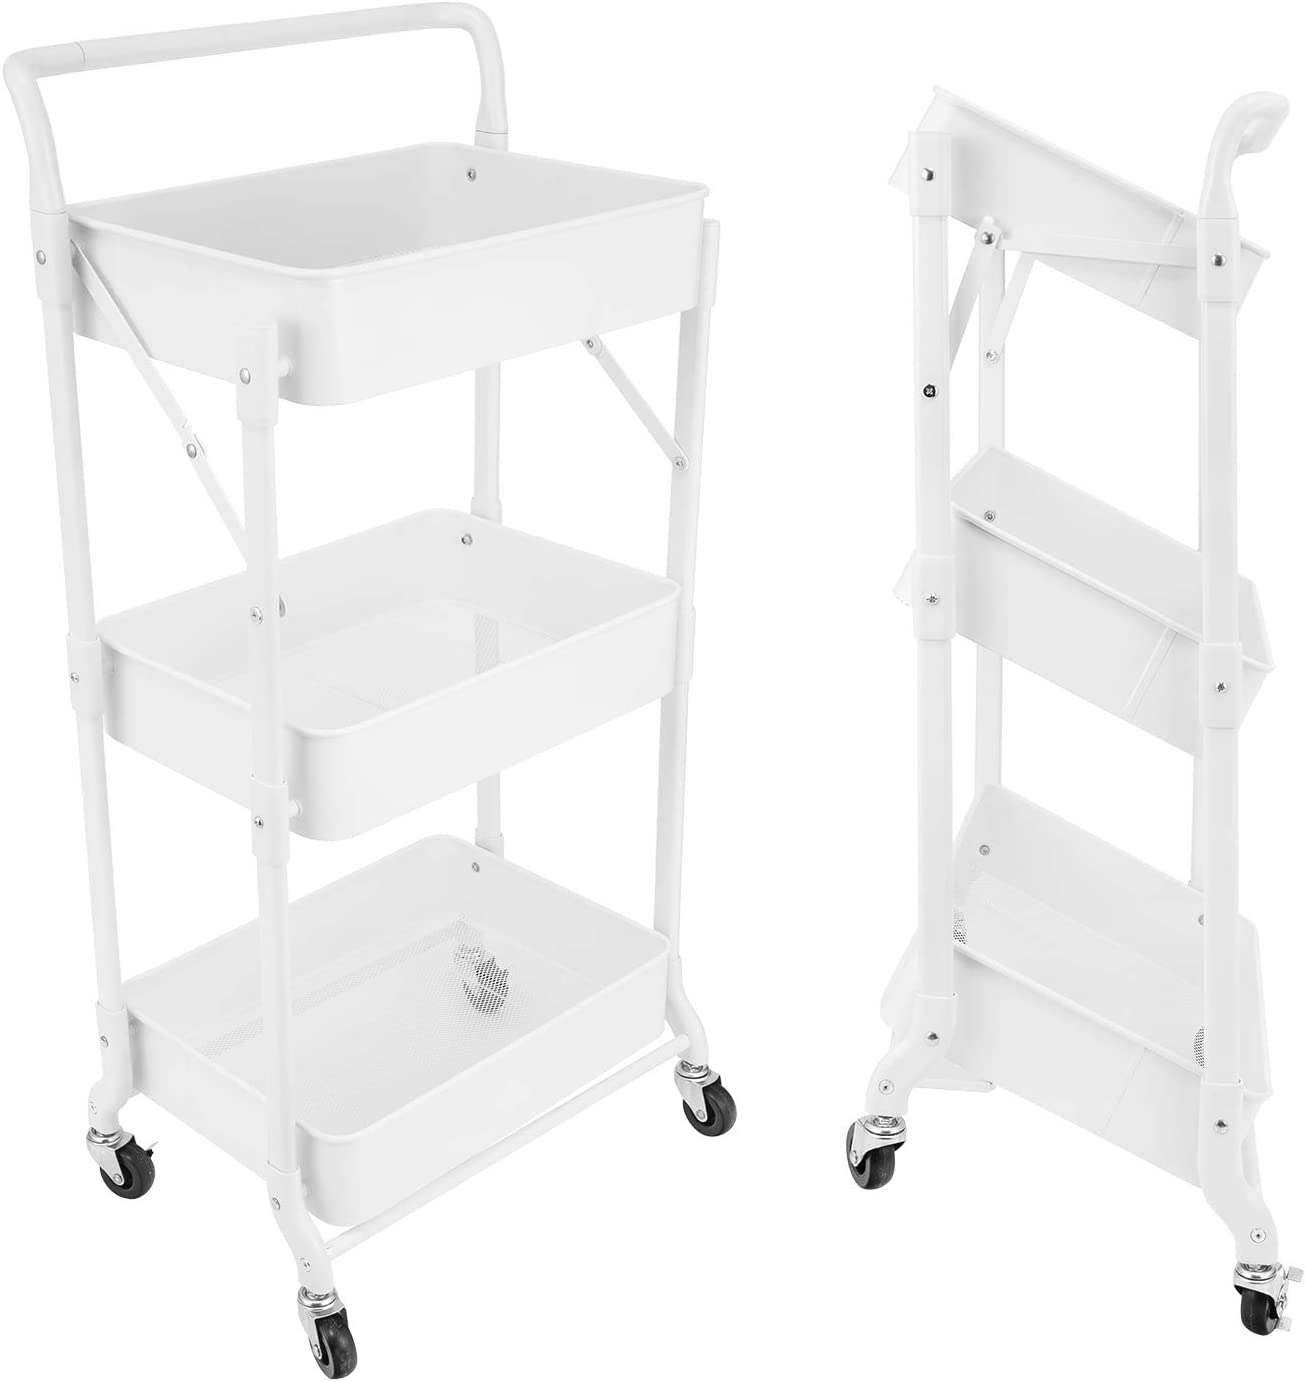 3-Tier Folding Rolling Cart Organizer, Utility Cart with Handle and Metal Storage Basket, Folding Storage Cart with Wheels for Kitchen/Bedroom/Living Room/Bathroom/Office, White